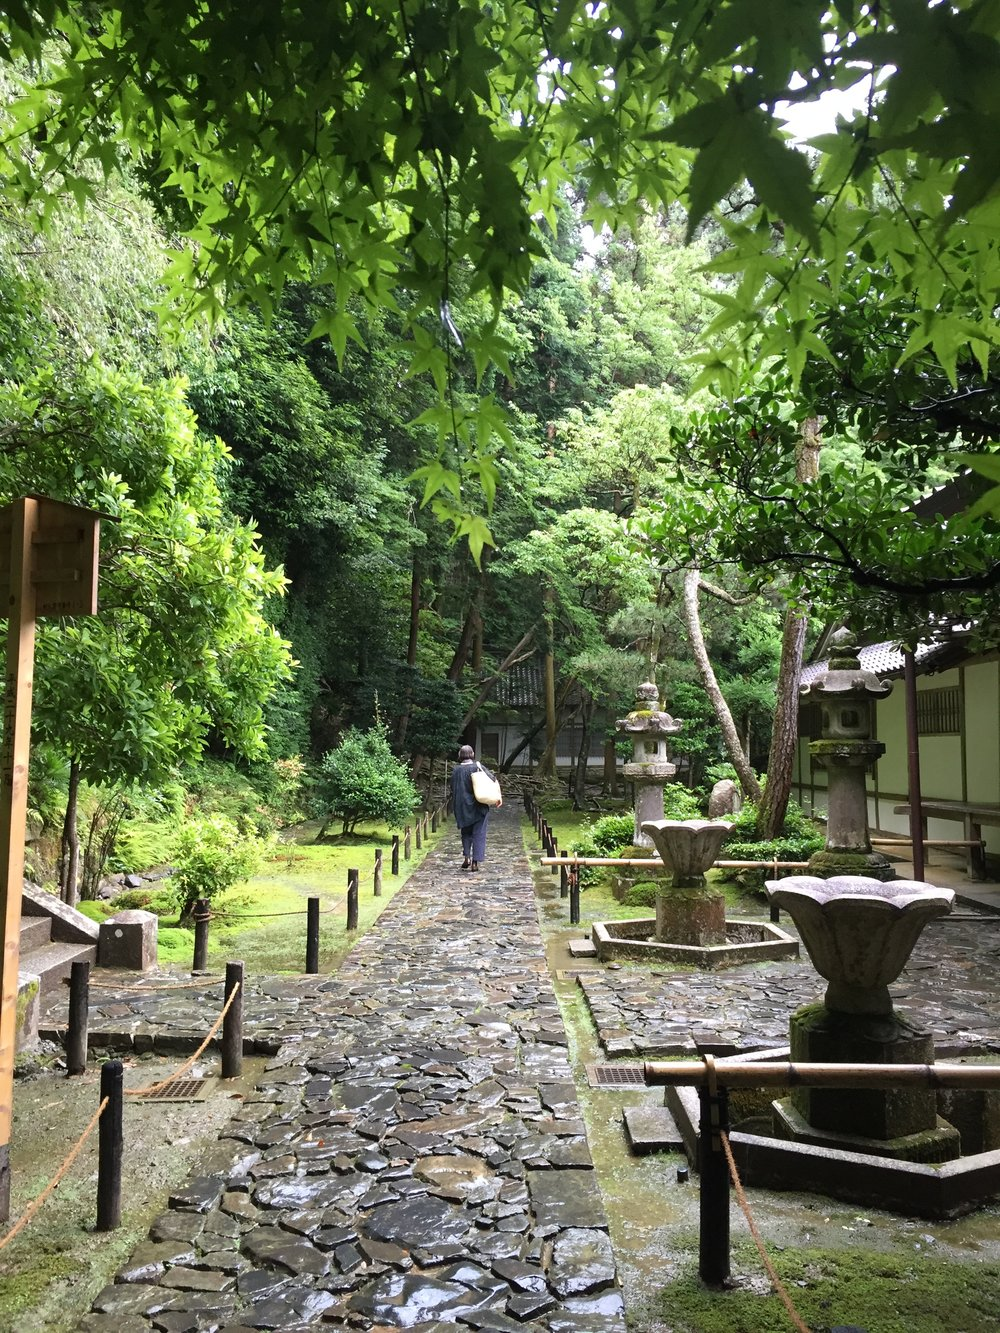 Daniela walking in the rain at Honen-in, Kyoto.